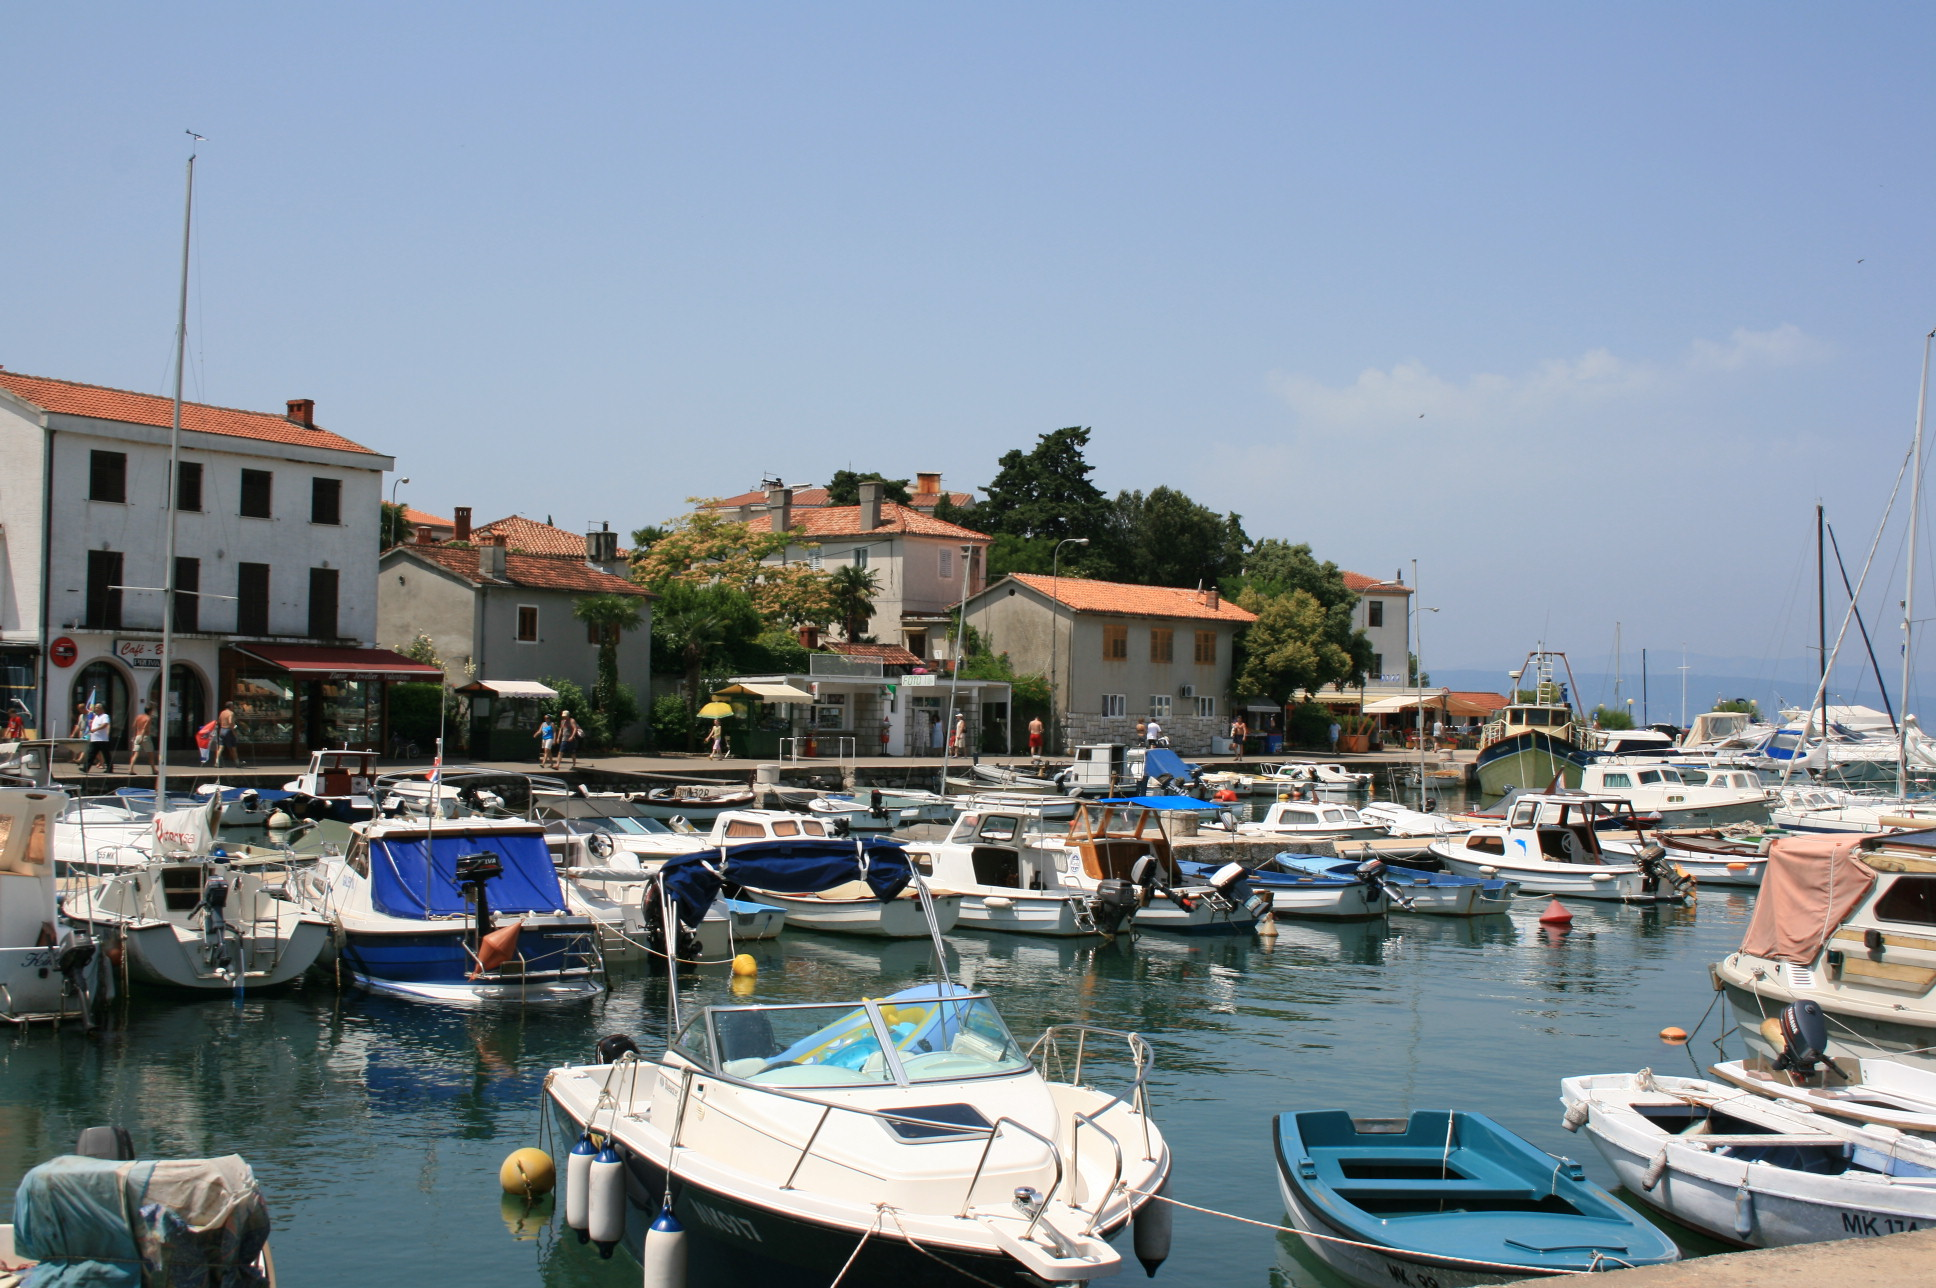 Malinska Croatia  City pictures : Southern part of harbor in Malinska Wikimedia Commons